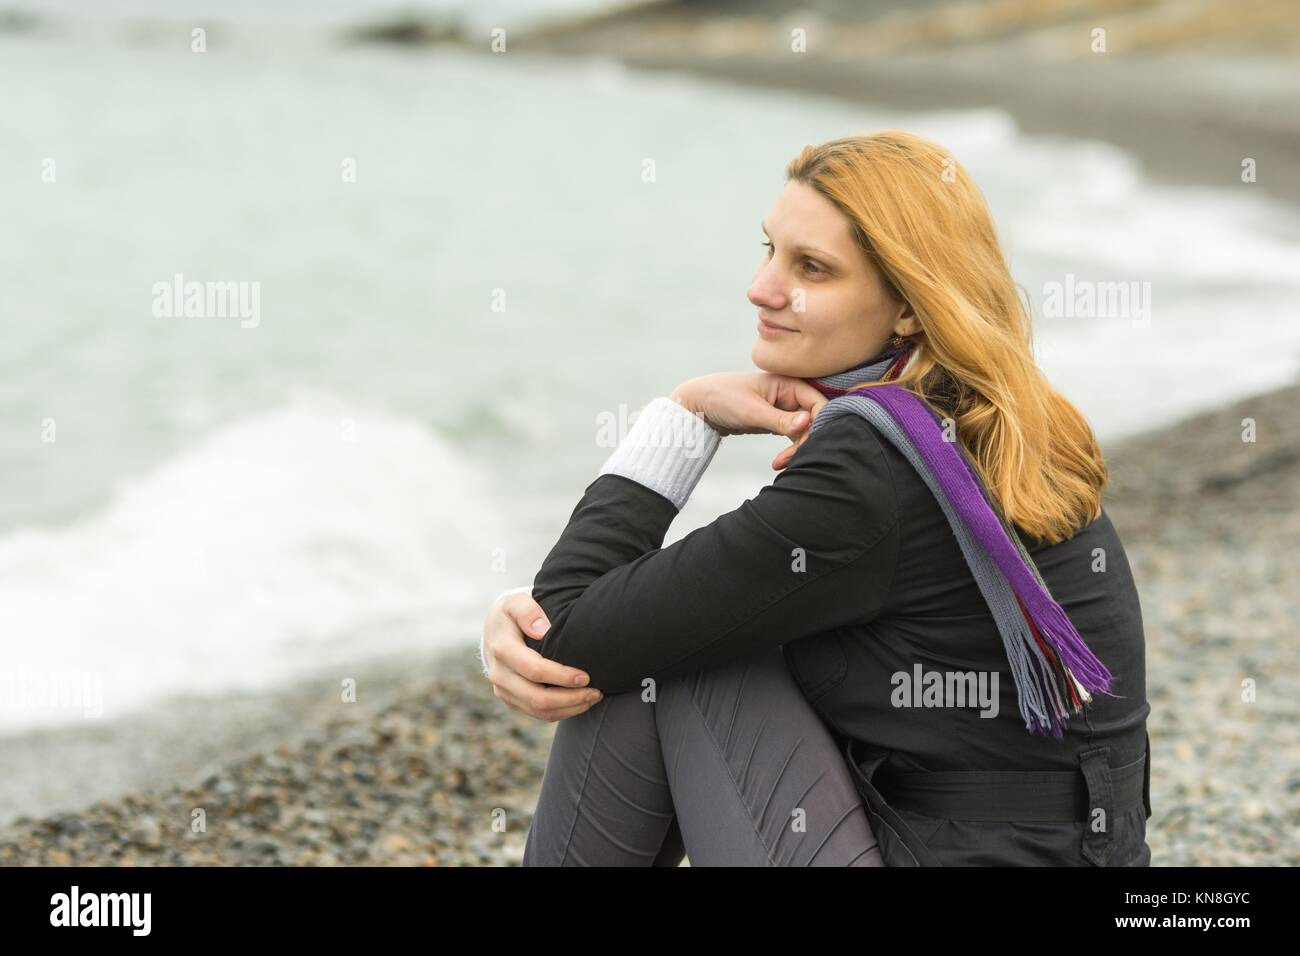 A girl sits on a pebble beach by the sea on a cloudy day in cold weather, and smiles enigmatically. Stock Photo